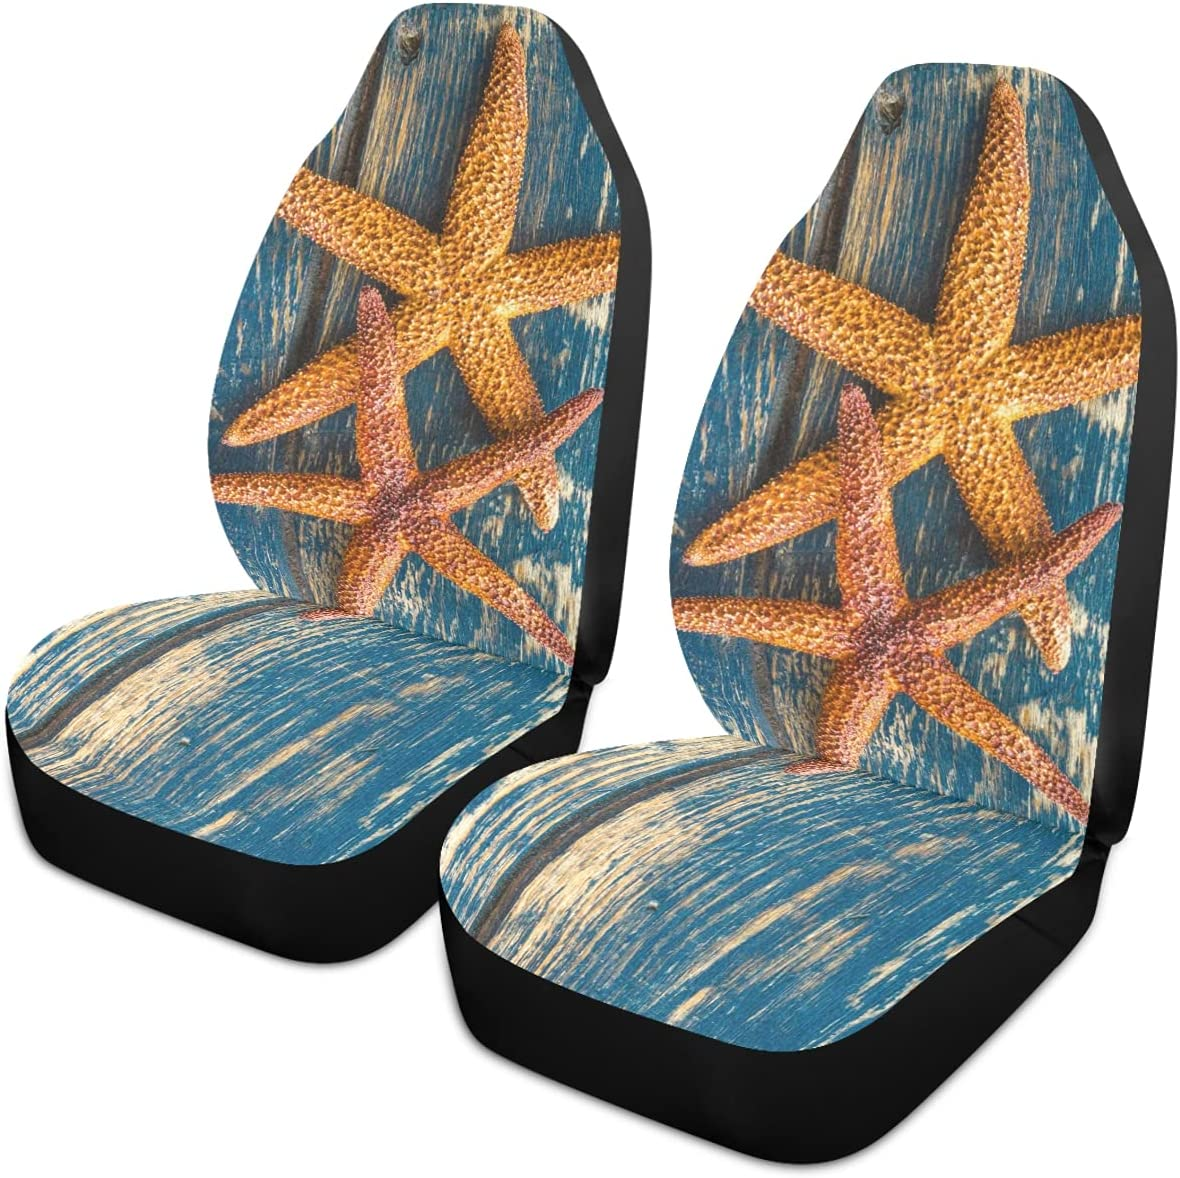 Oarencol New product type Summer Two Starfish Wooden Car Max 57% OFF Covers Seat Universal Au